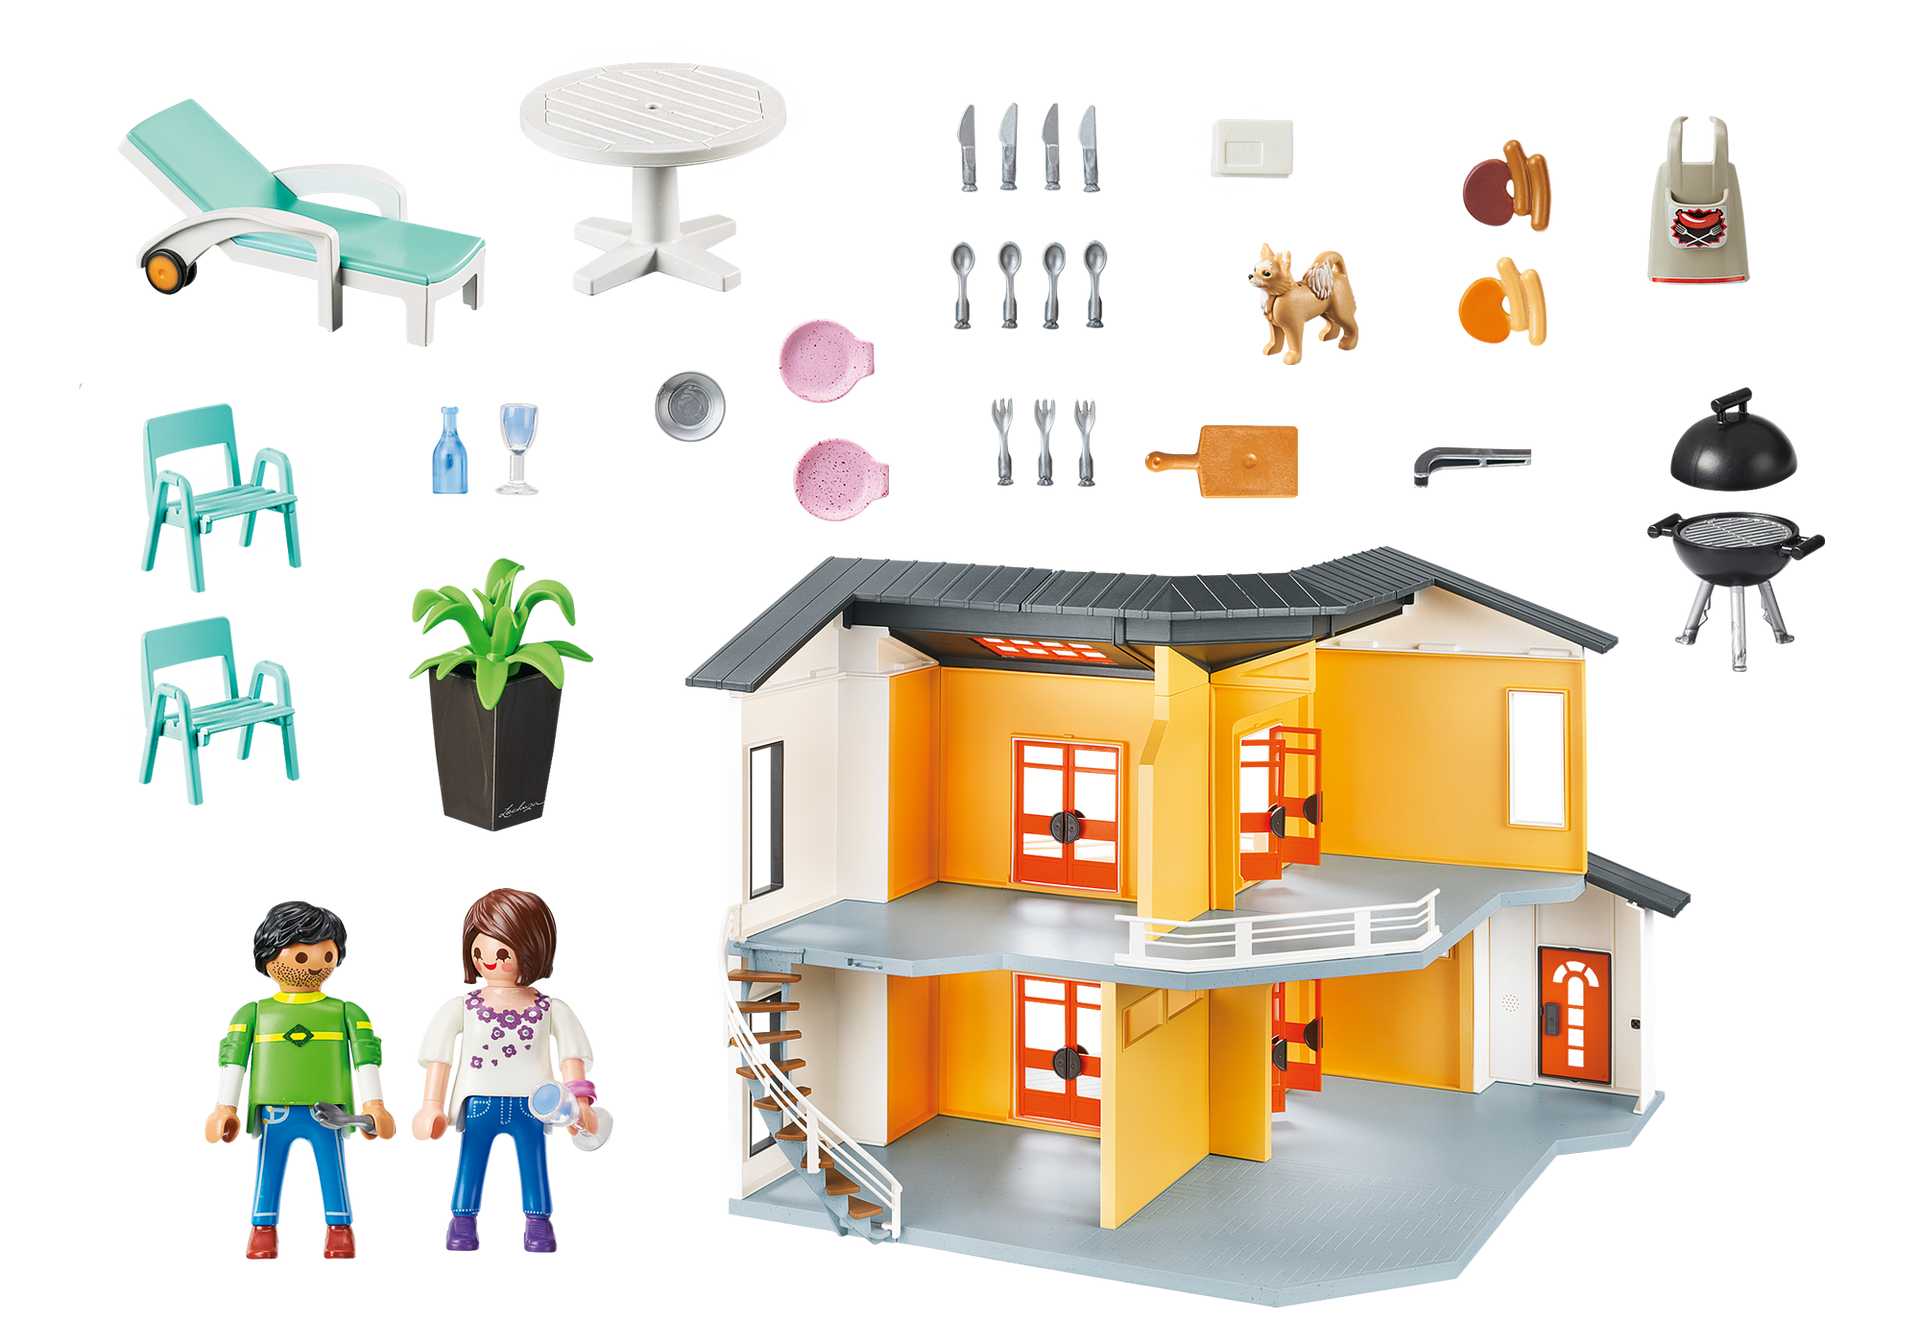 Best maison moderne playmobil ideas awesome interior for Playmobil maison moderne cuisine